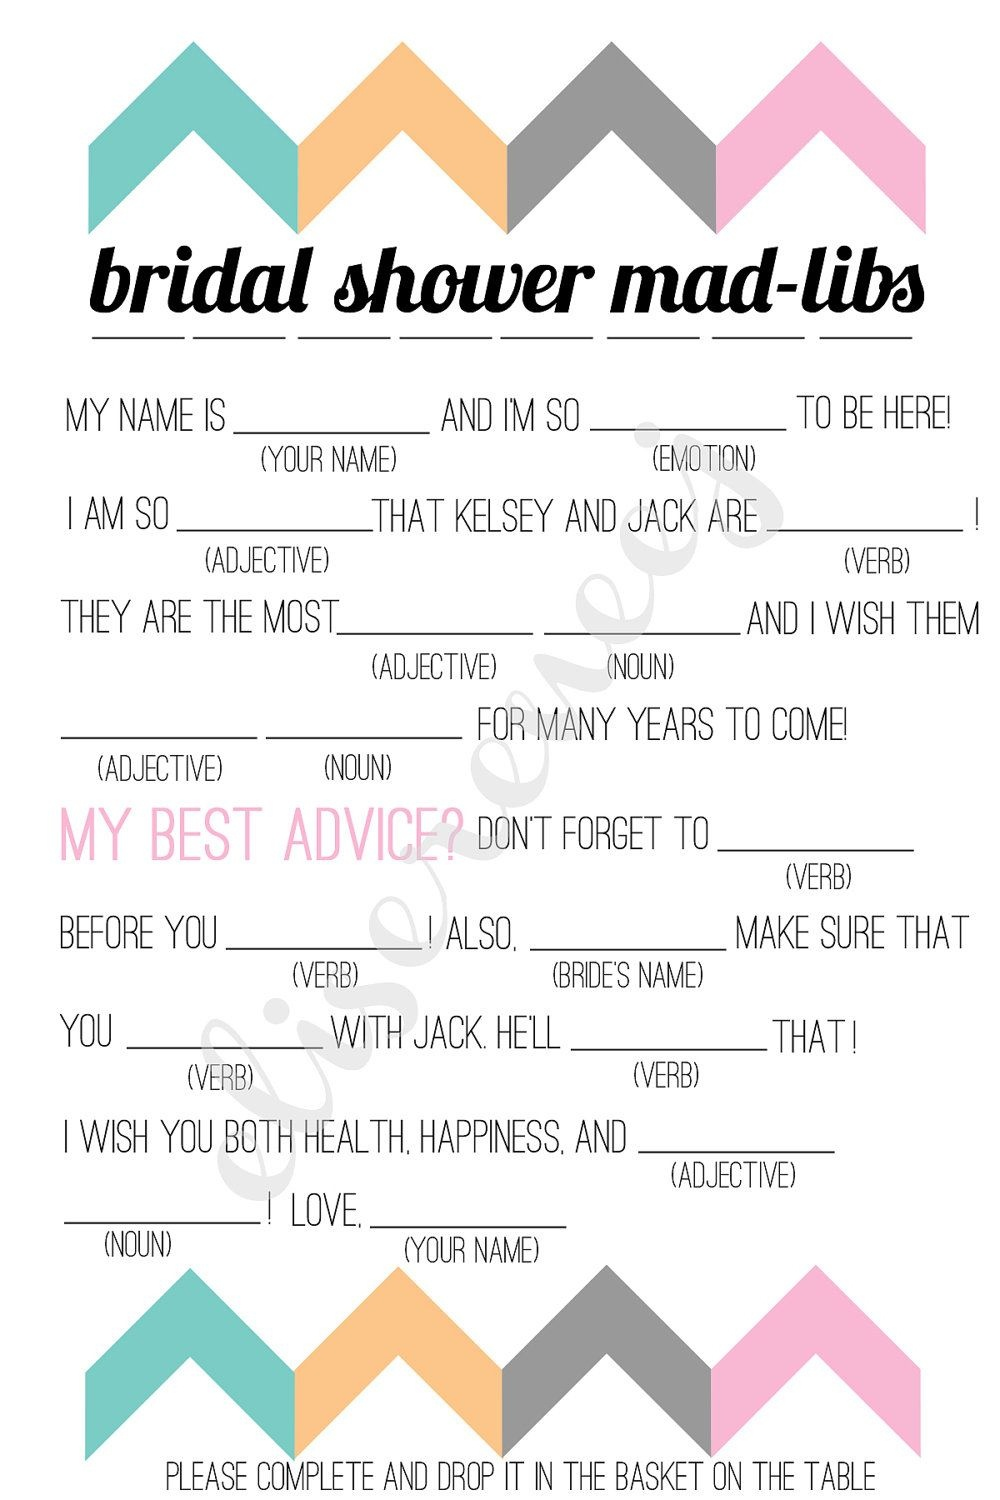 Free Bachelorette Party Mad Libs | Printable Bridal Shower Madlib - Free Printable Wedding Mad Libs